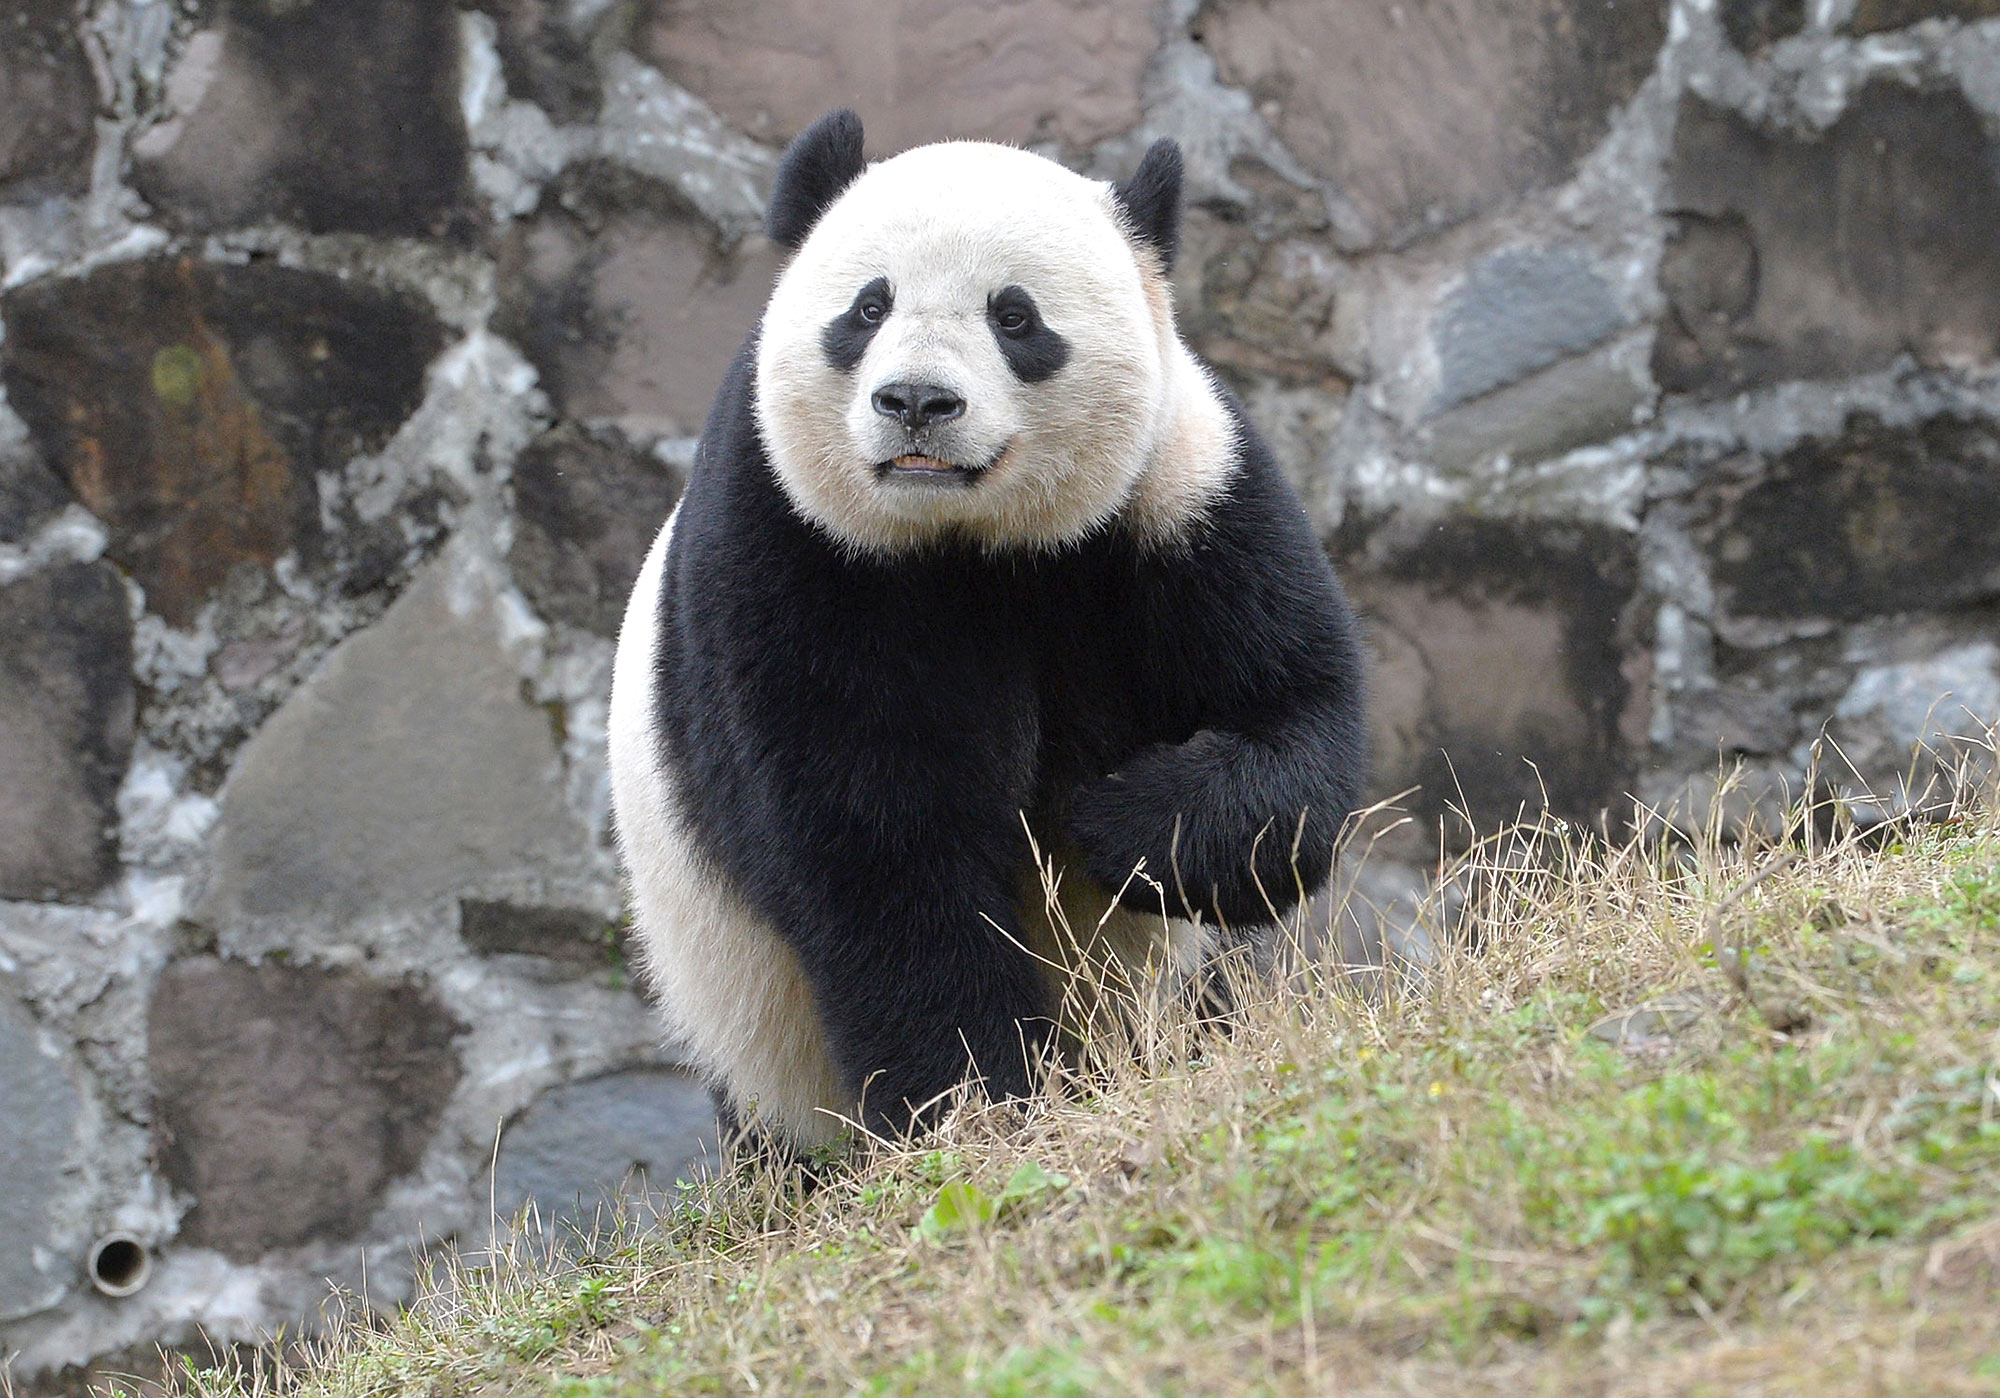 Bao Bao the Panda Bravely Adjusts to New Home in China Without Delicious American Cookies